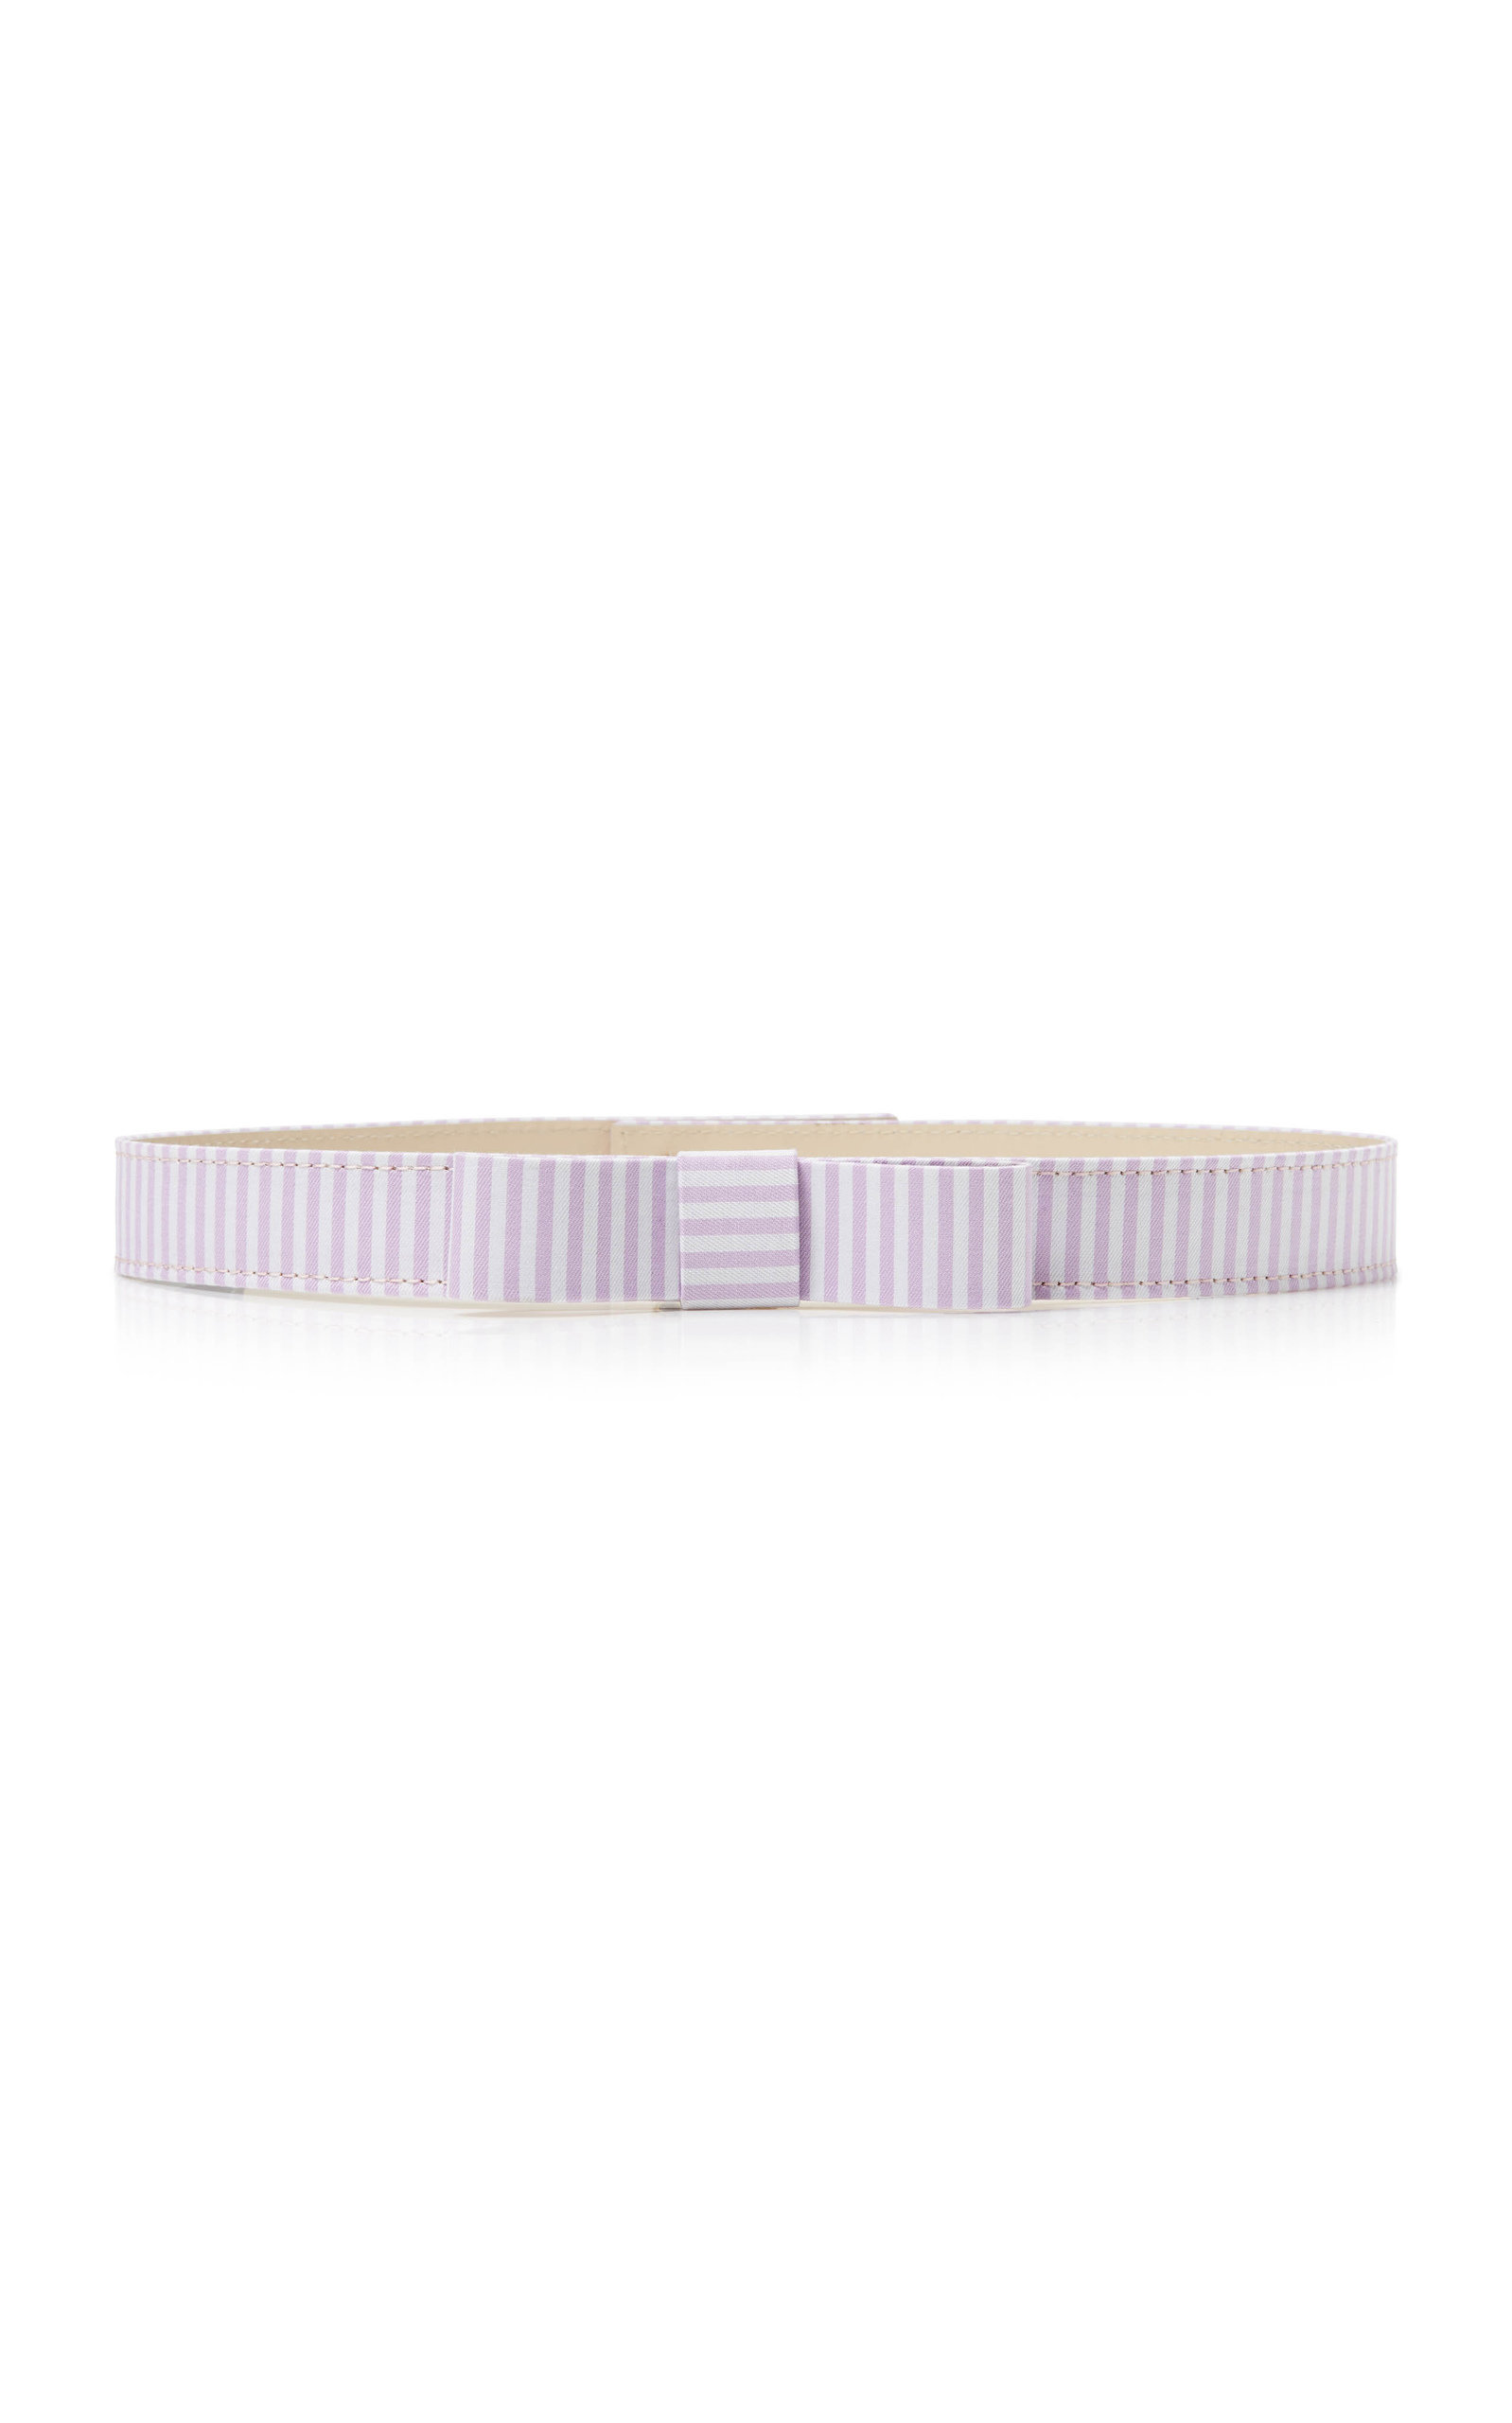 Women's Bow-Accented Striped Cotton Skinny Belt